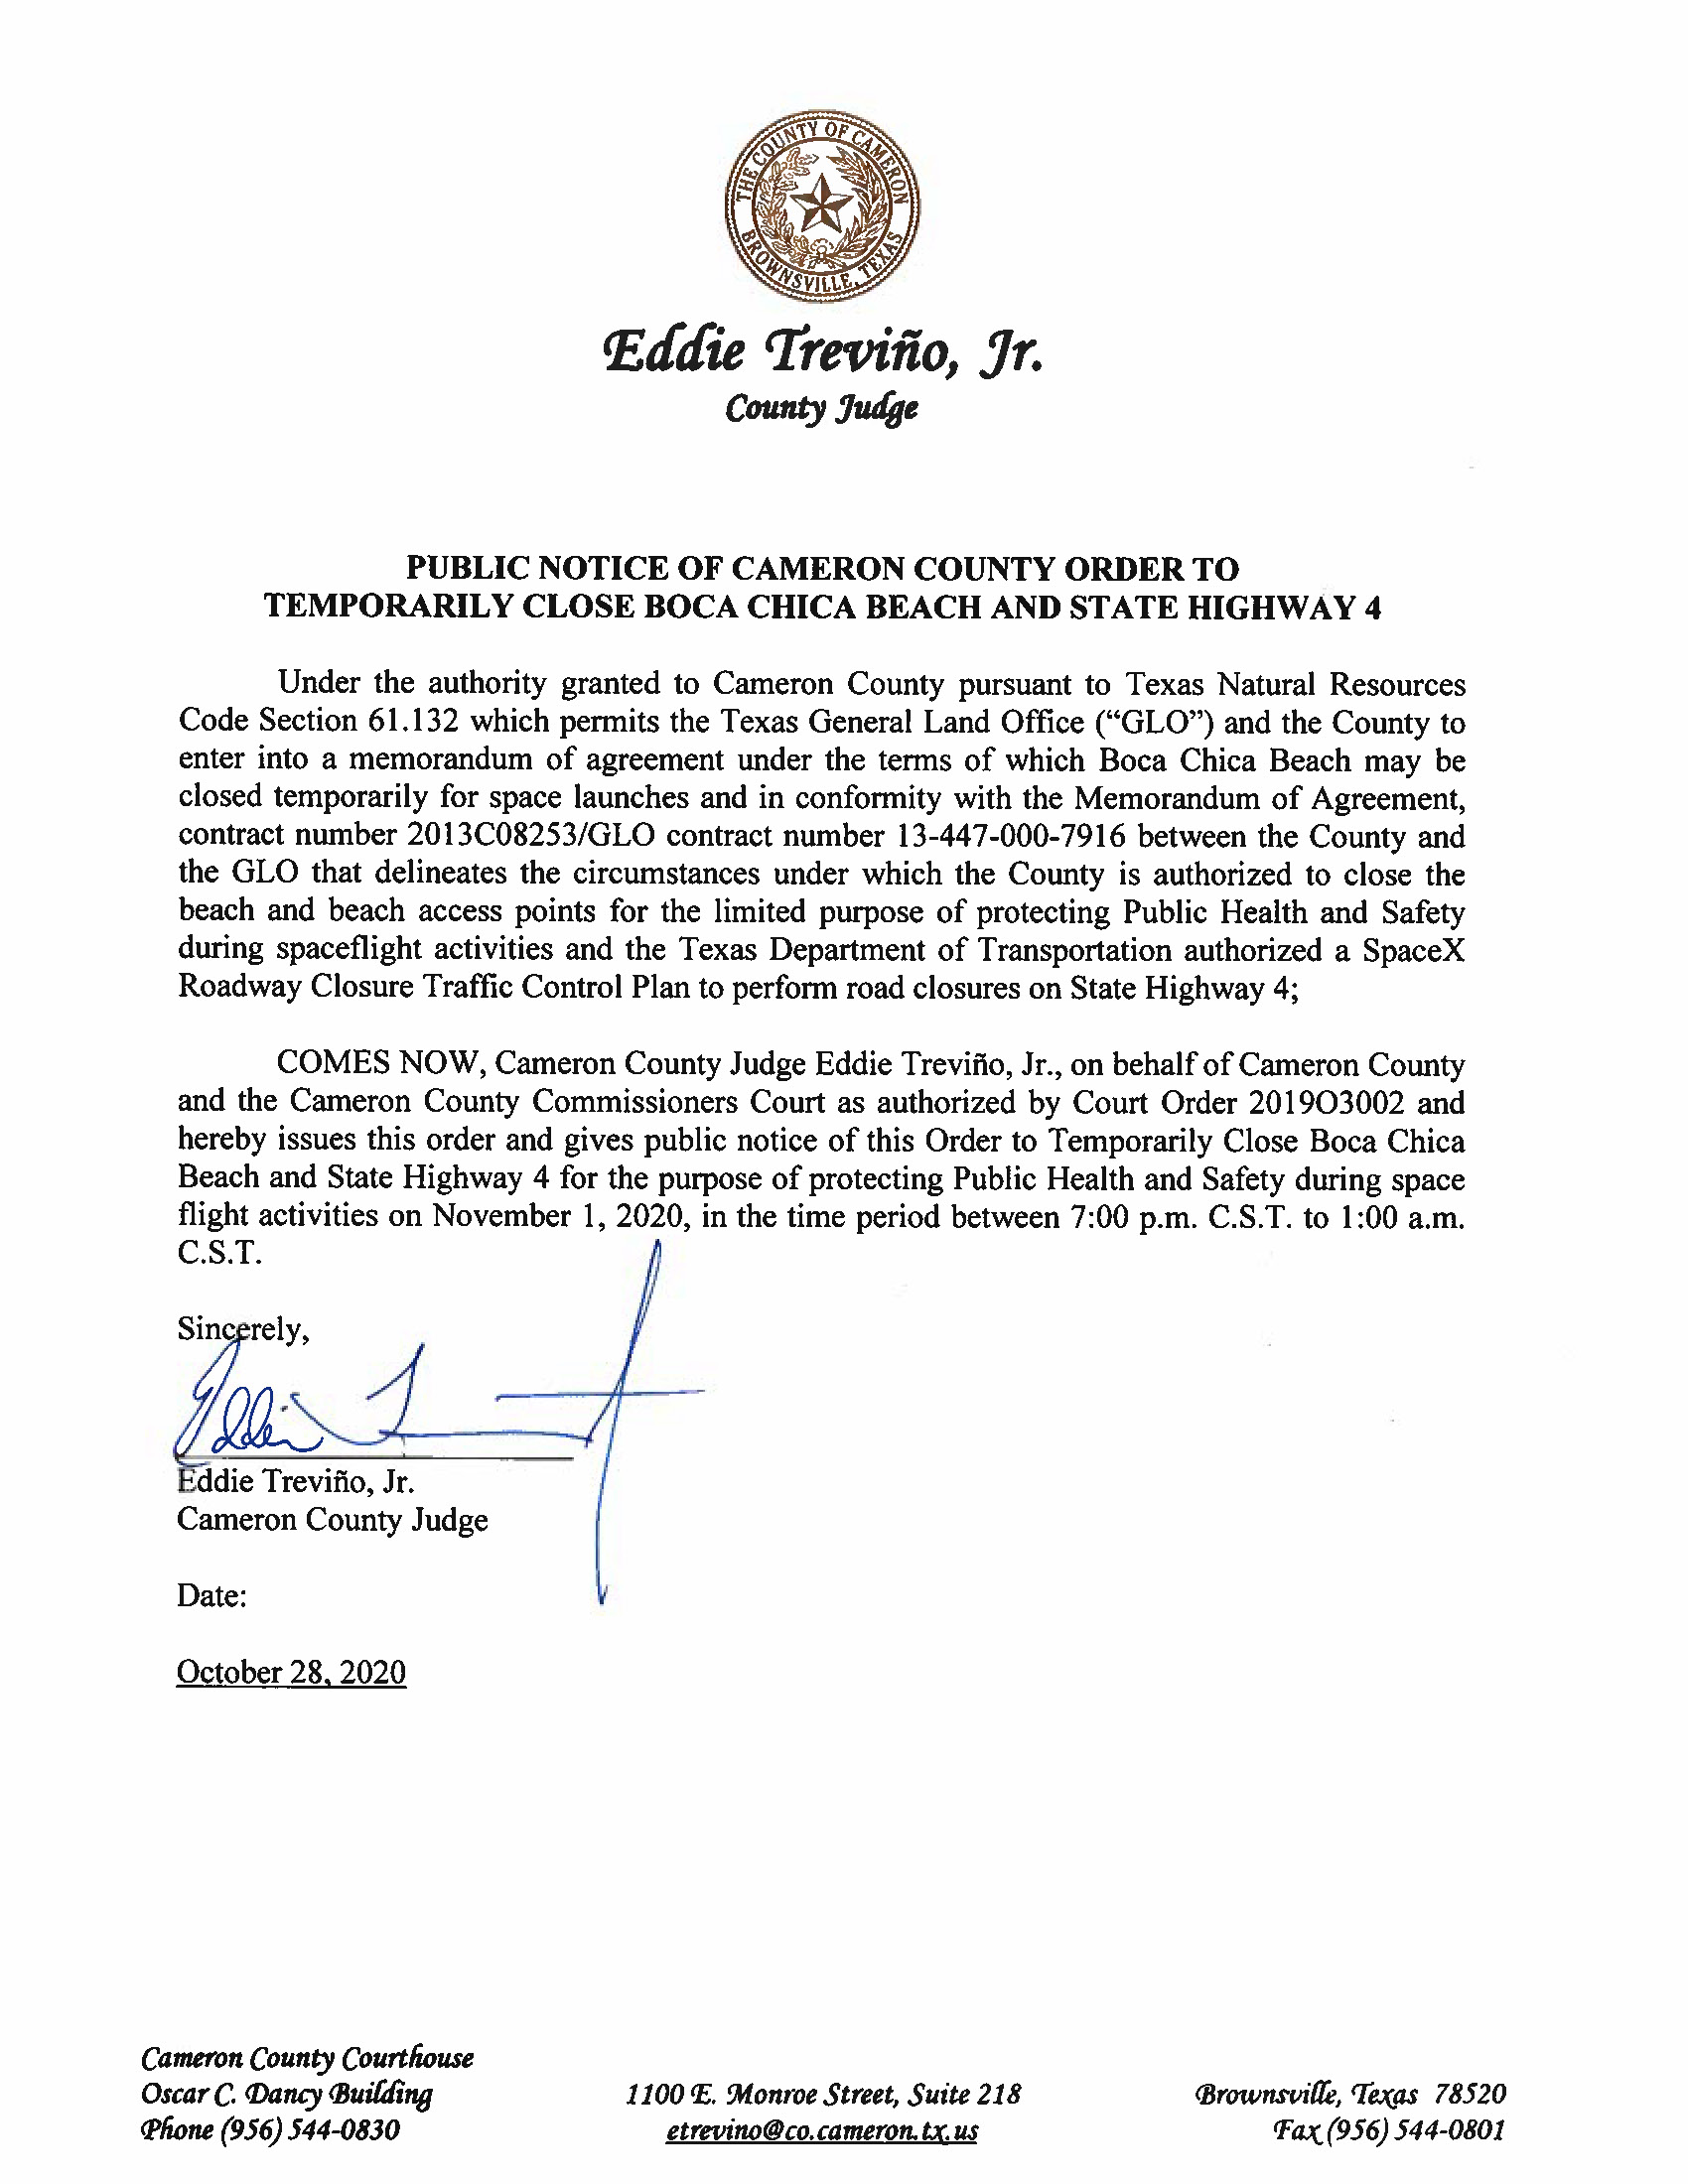 PUBLIC NOTICE OF CAMERON COUNTY ORDER TO TEMP. BEACH CLOSURE AND HWY.11.01.20.docx Page 1